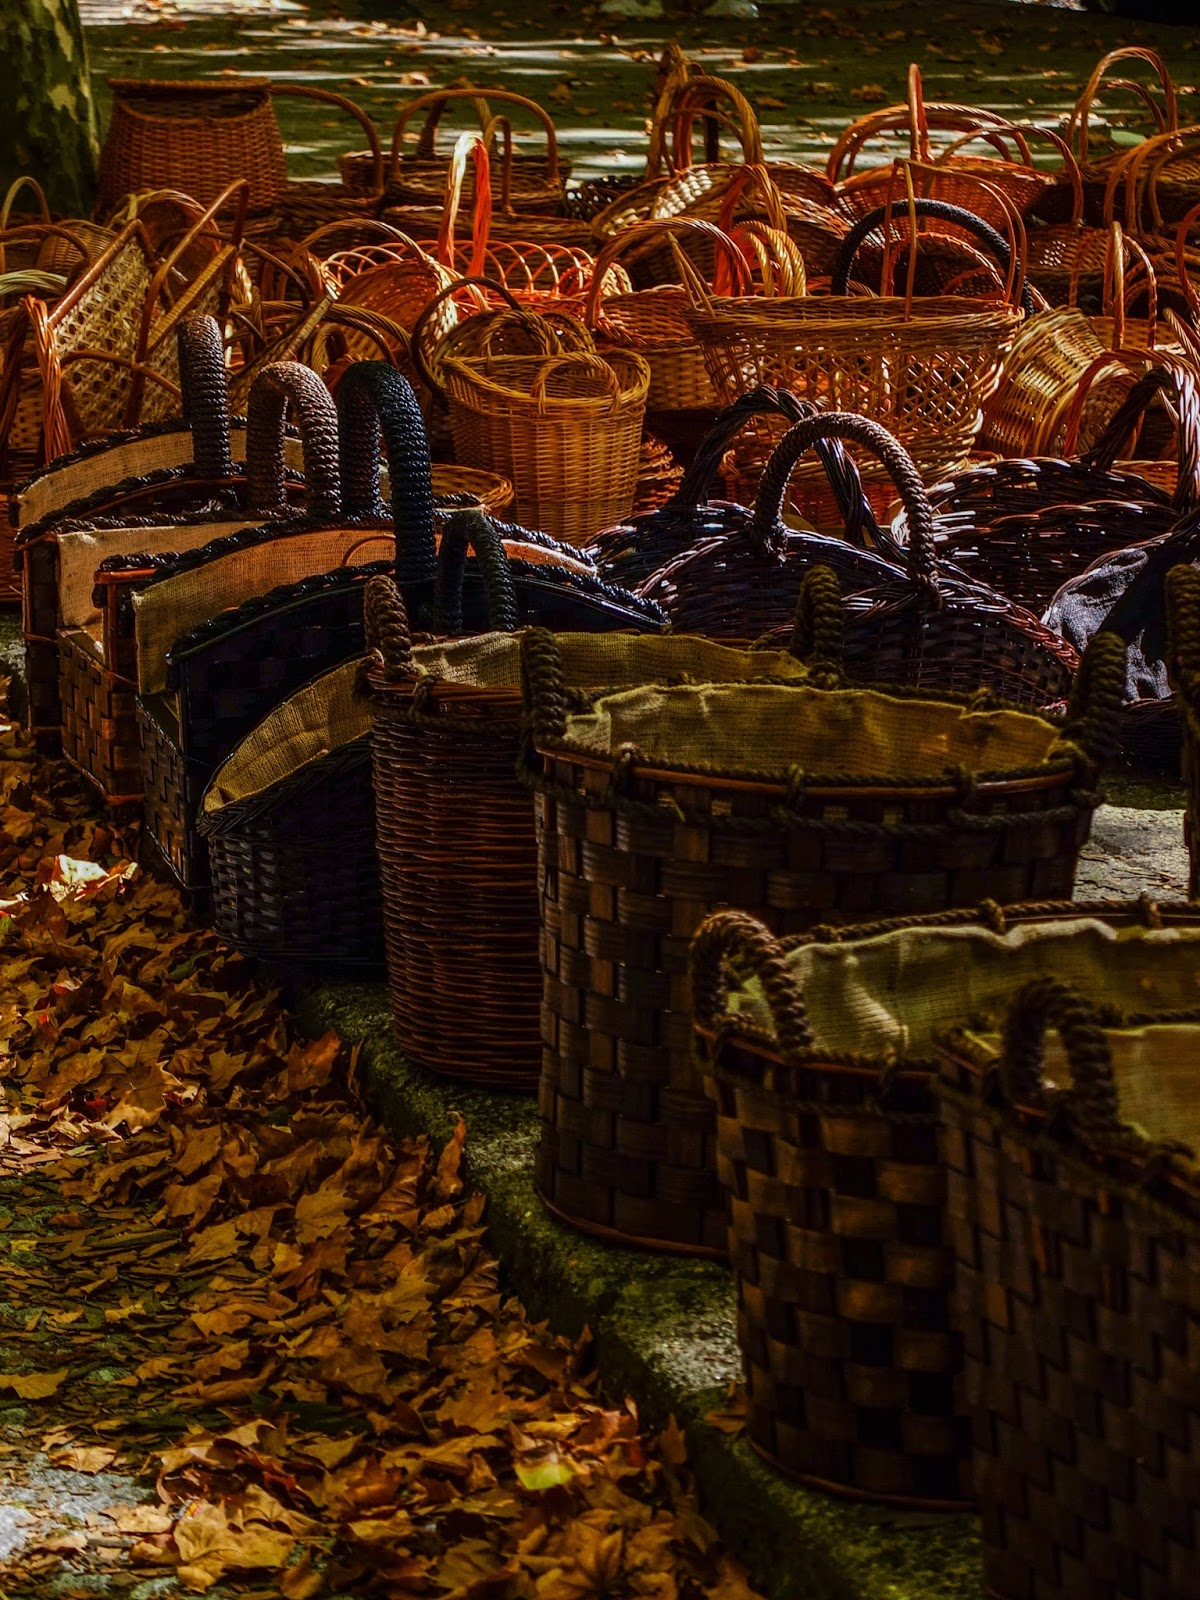 Hand woven willow baskets displayed at a market in Porto, Portugal surrounded by autumn leaves.